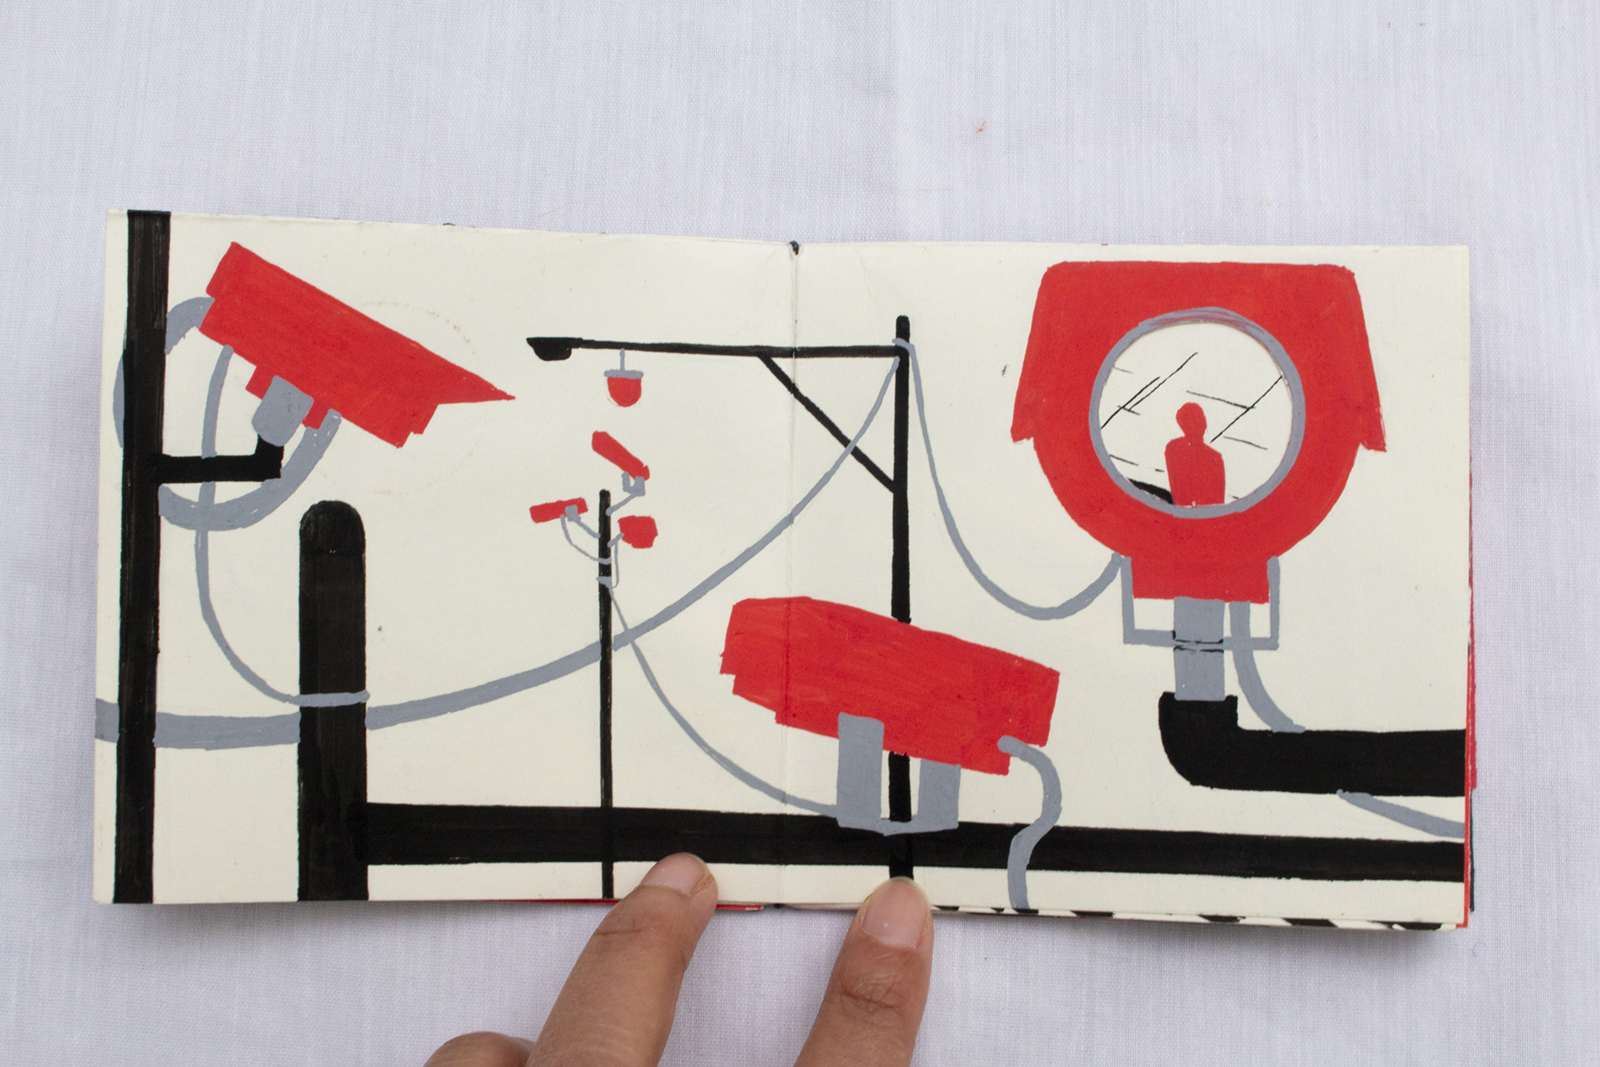 Seventh spread folded. Red surveillance cameras atop electric poles. The largest one has a cut-out showing a red silhouette.